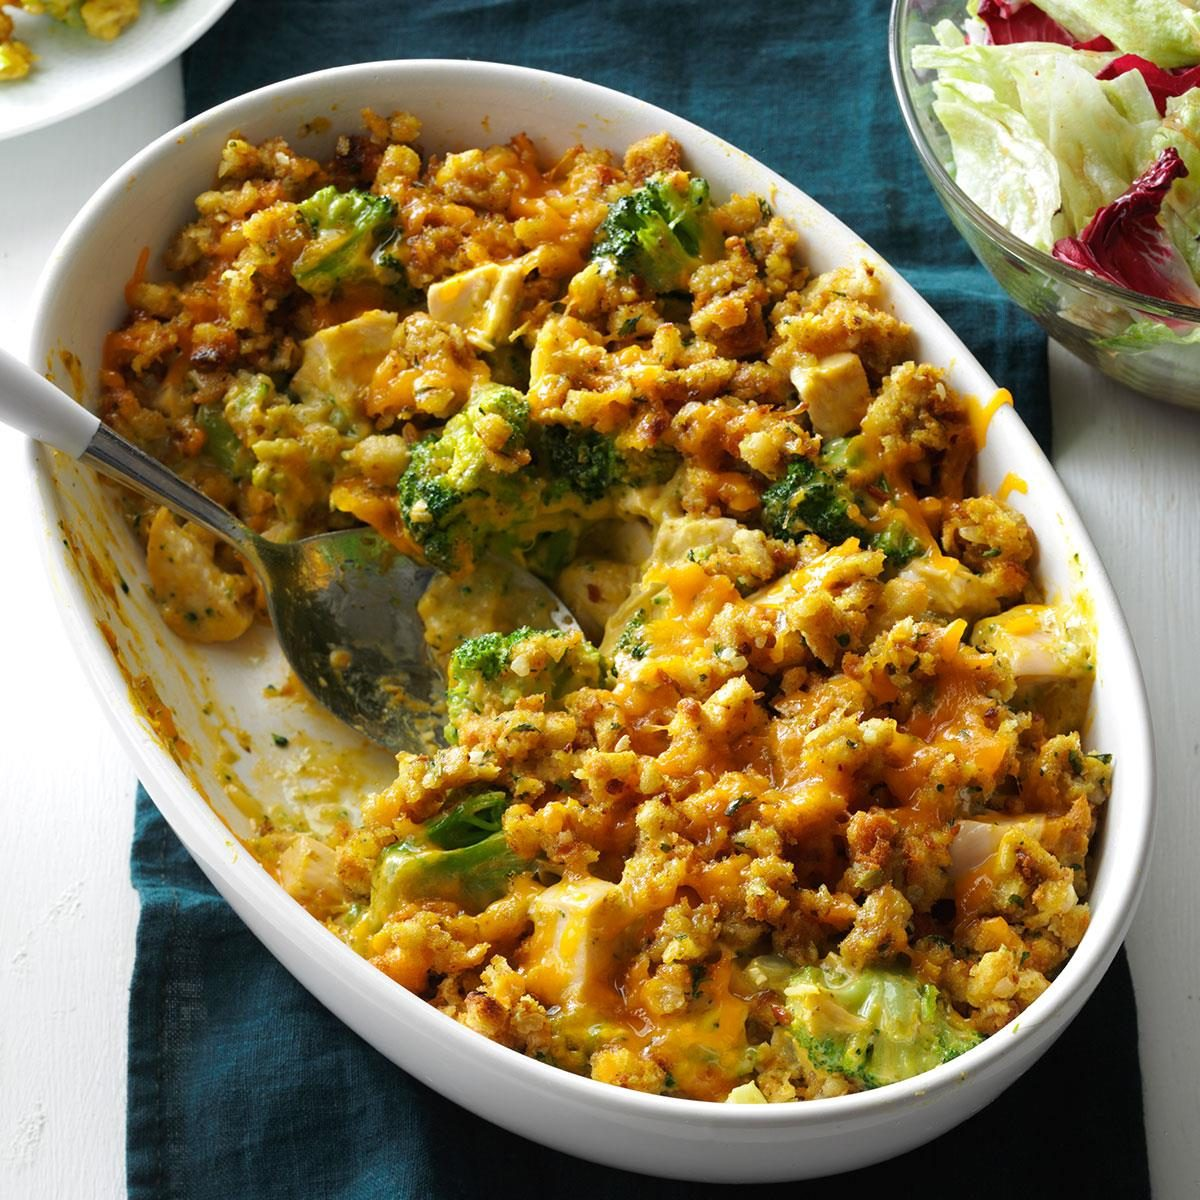 Contest-Winning Broccoli Chicken Casserole Recipe